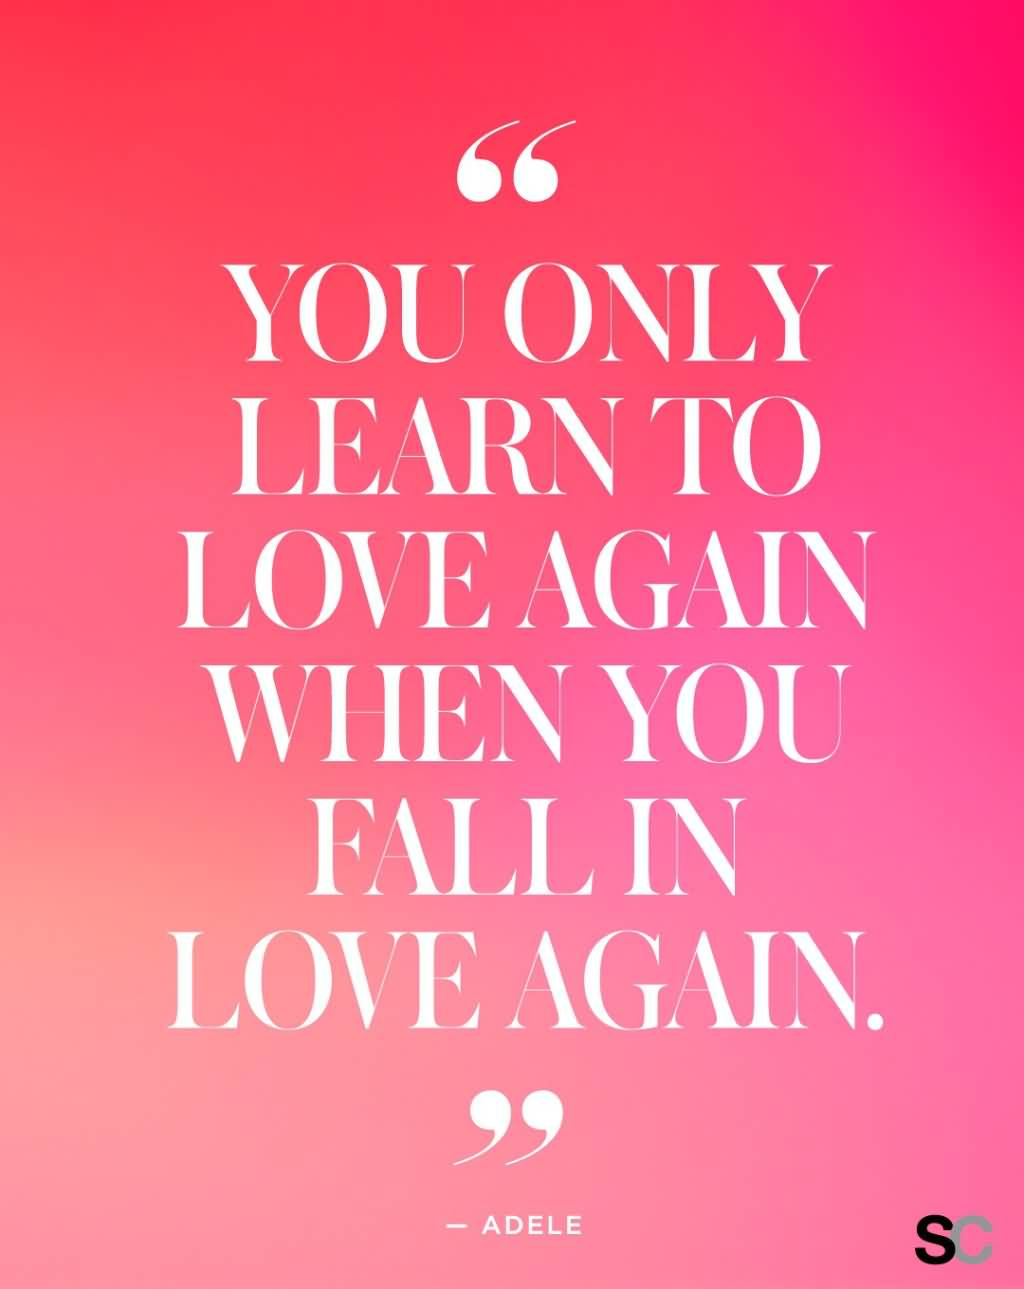 Love Images And Quotes 06